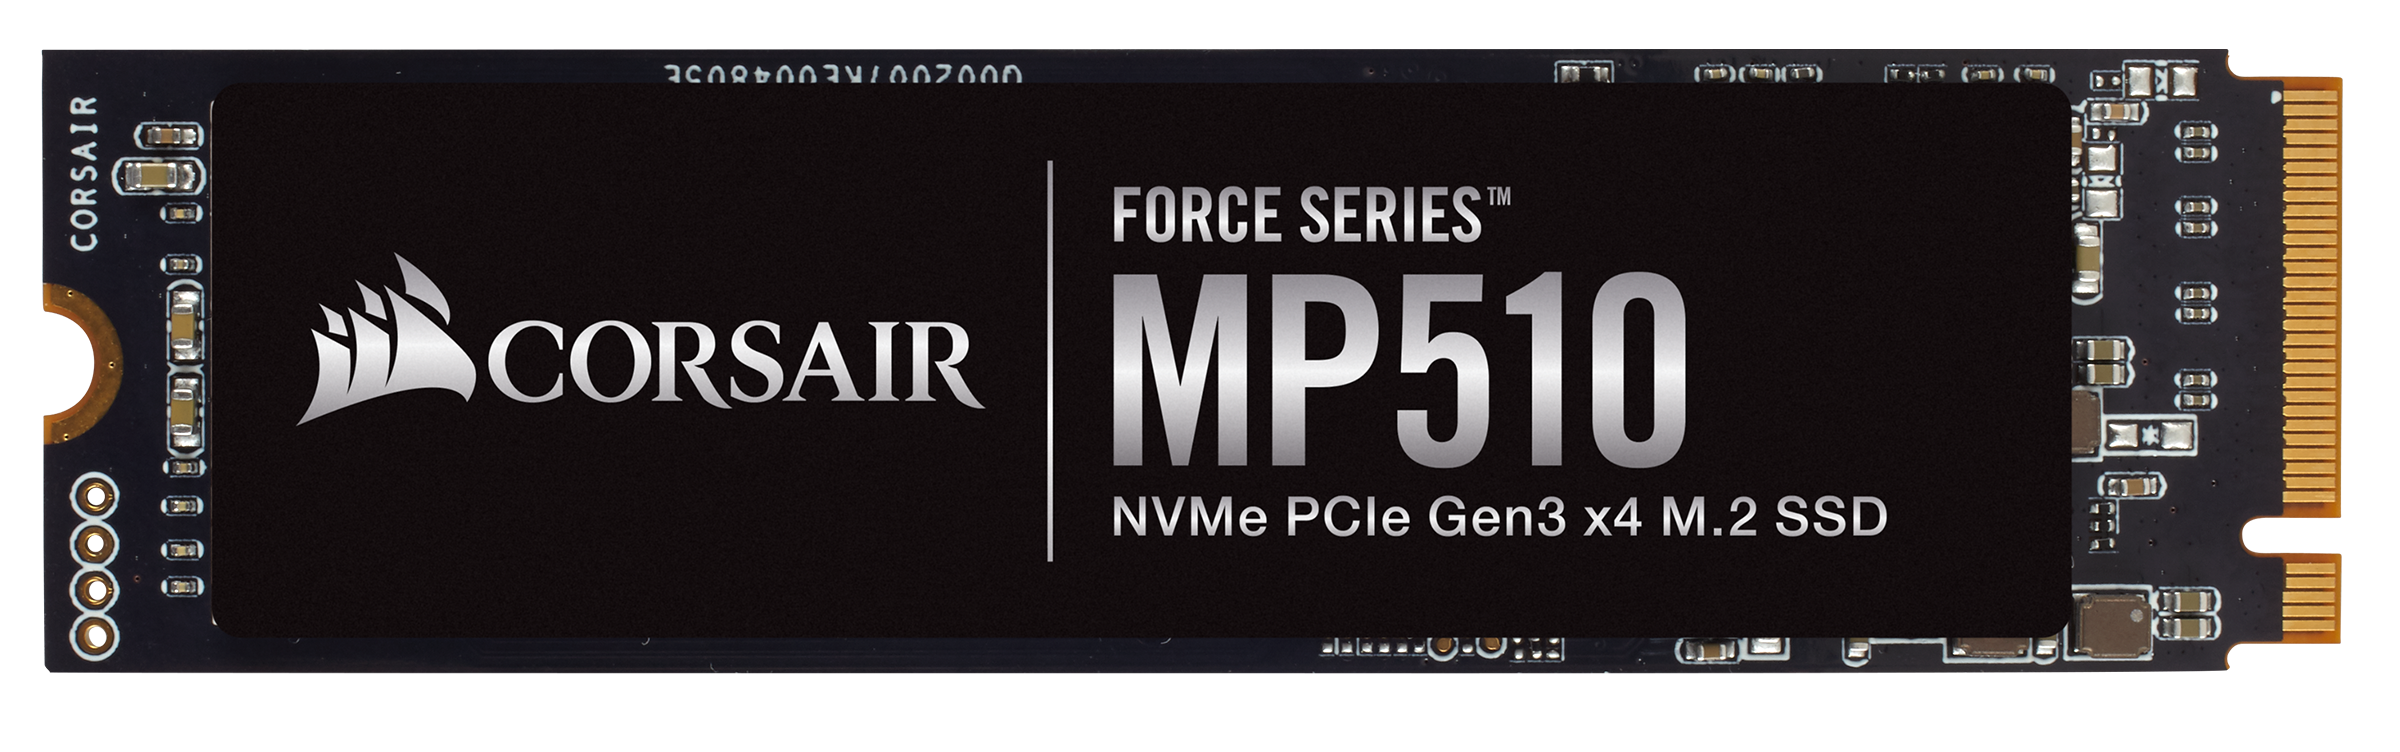 SSD Force MP510 Series M.2 NVMe PCIe Gen3 240 Go x4 Corsair